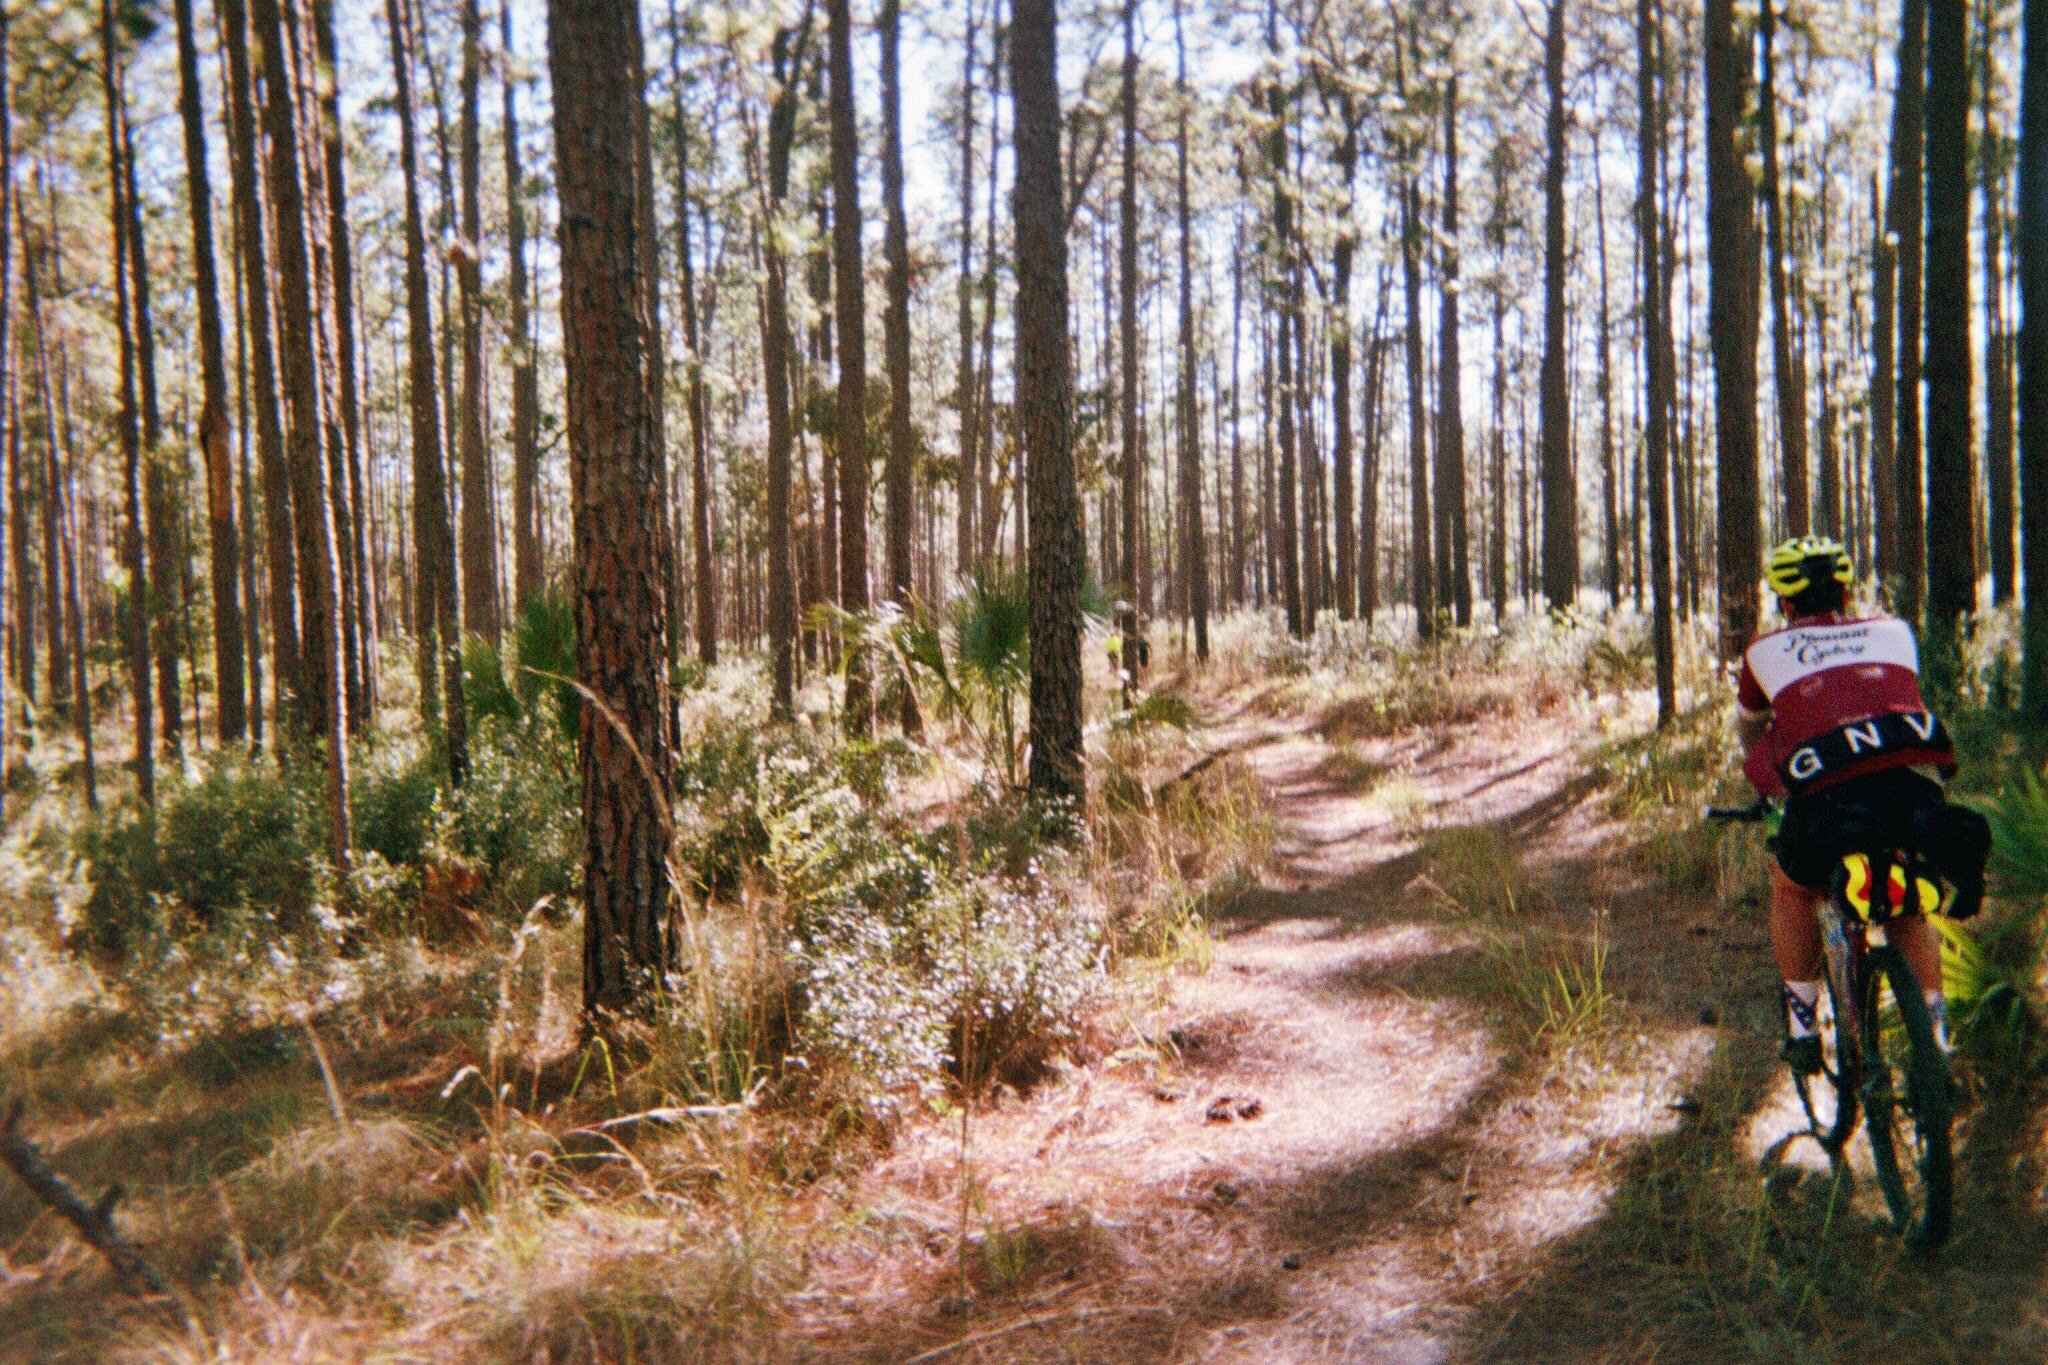 Ocala National Forest on film by Ana Fajardo